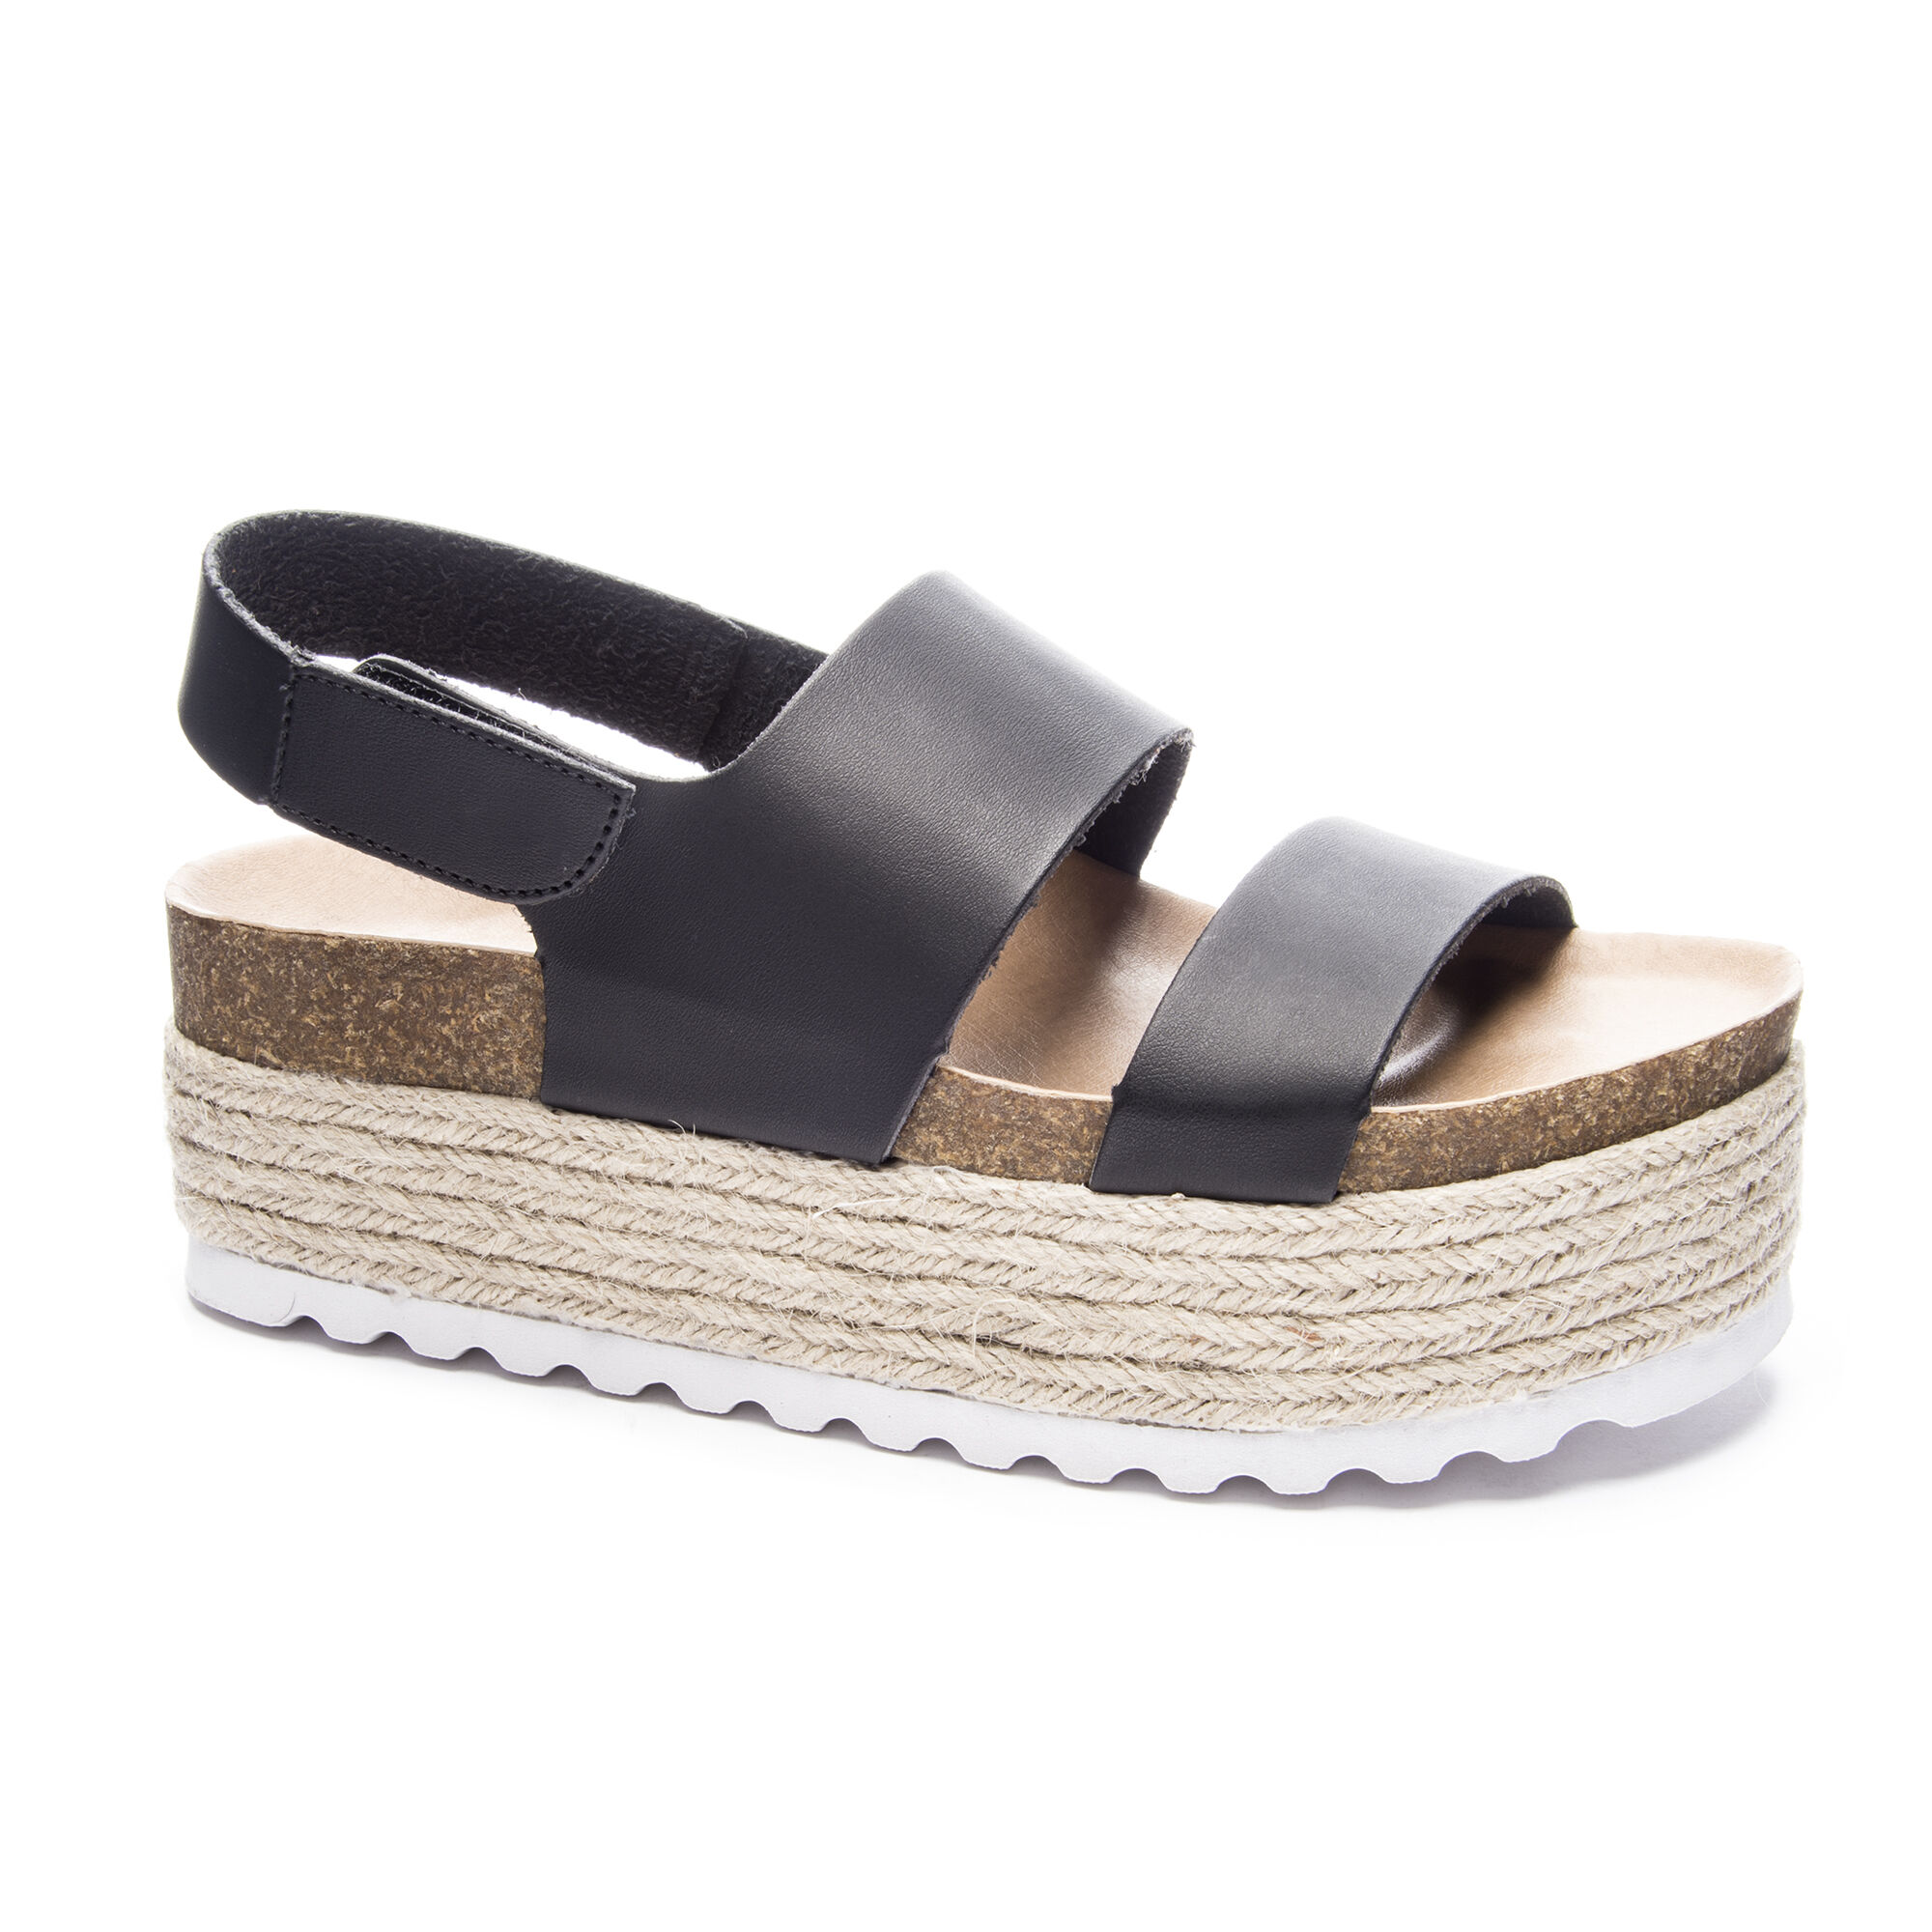 cce13beb69d Dirty laundry peyton smooth platform sandal chinese laundry JPG 2000x2000 Womens  dirty laundry sandals